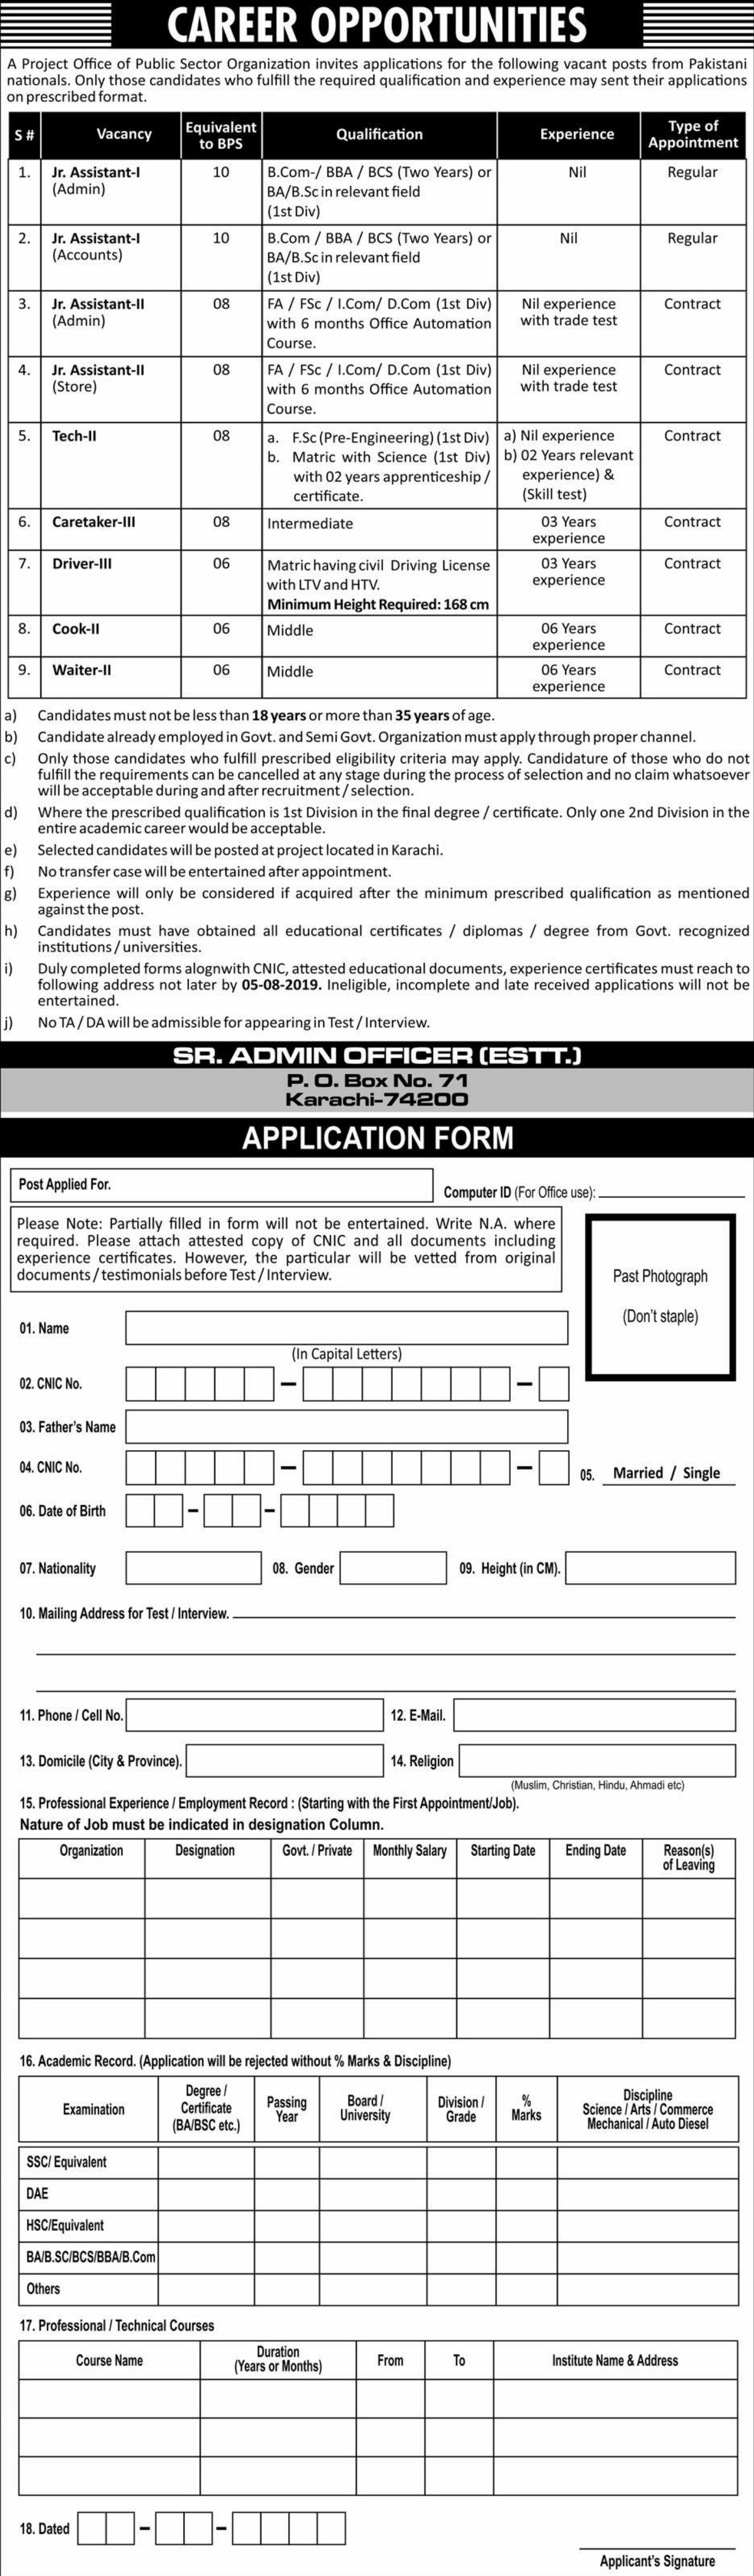 Public Sector Organization Jobs 2019 P.O.Box 71 Karachi